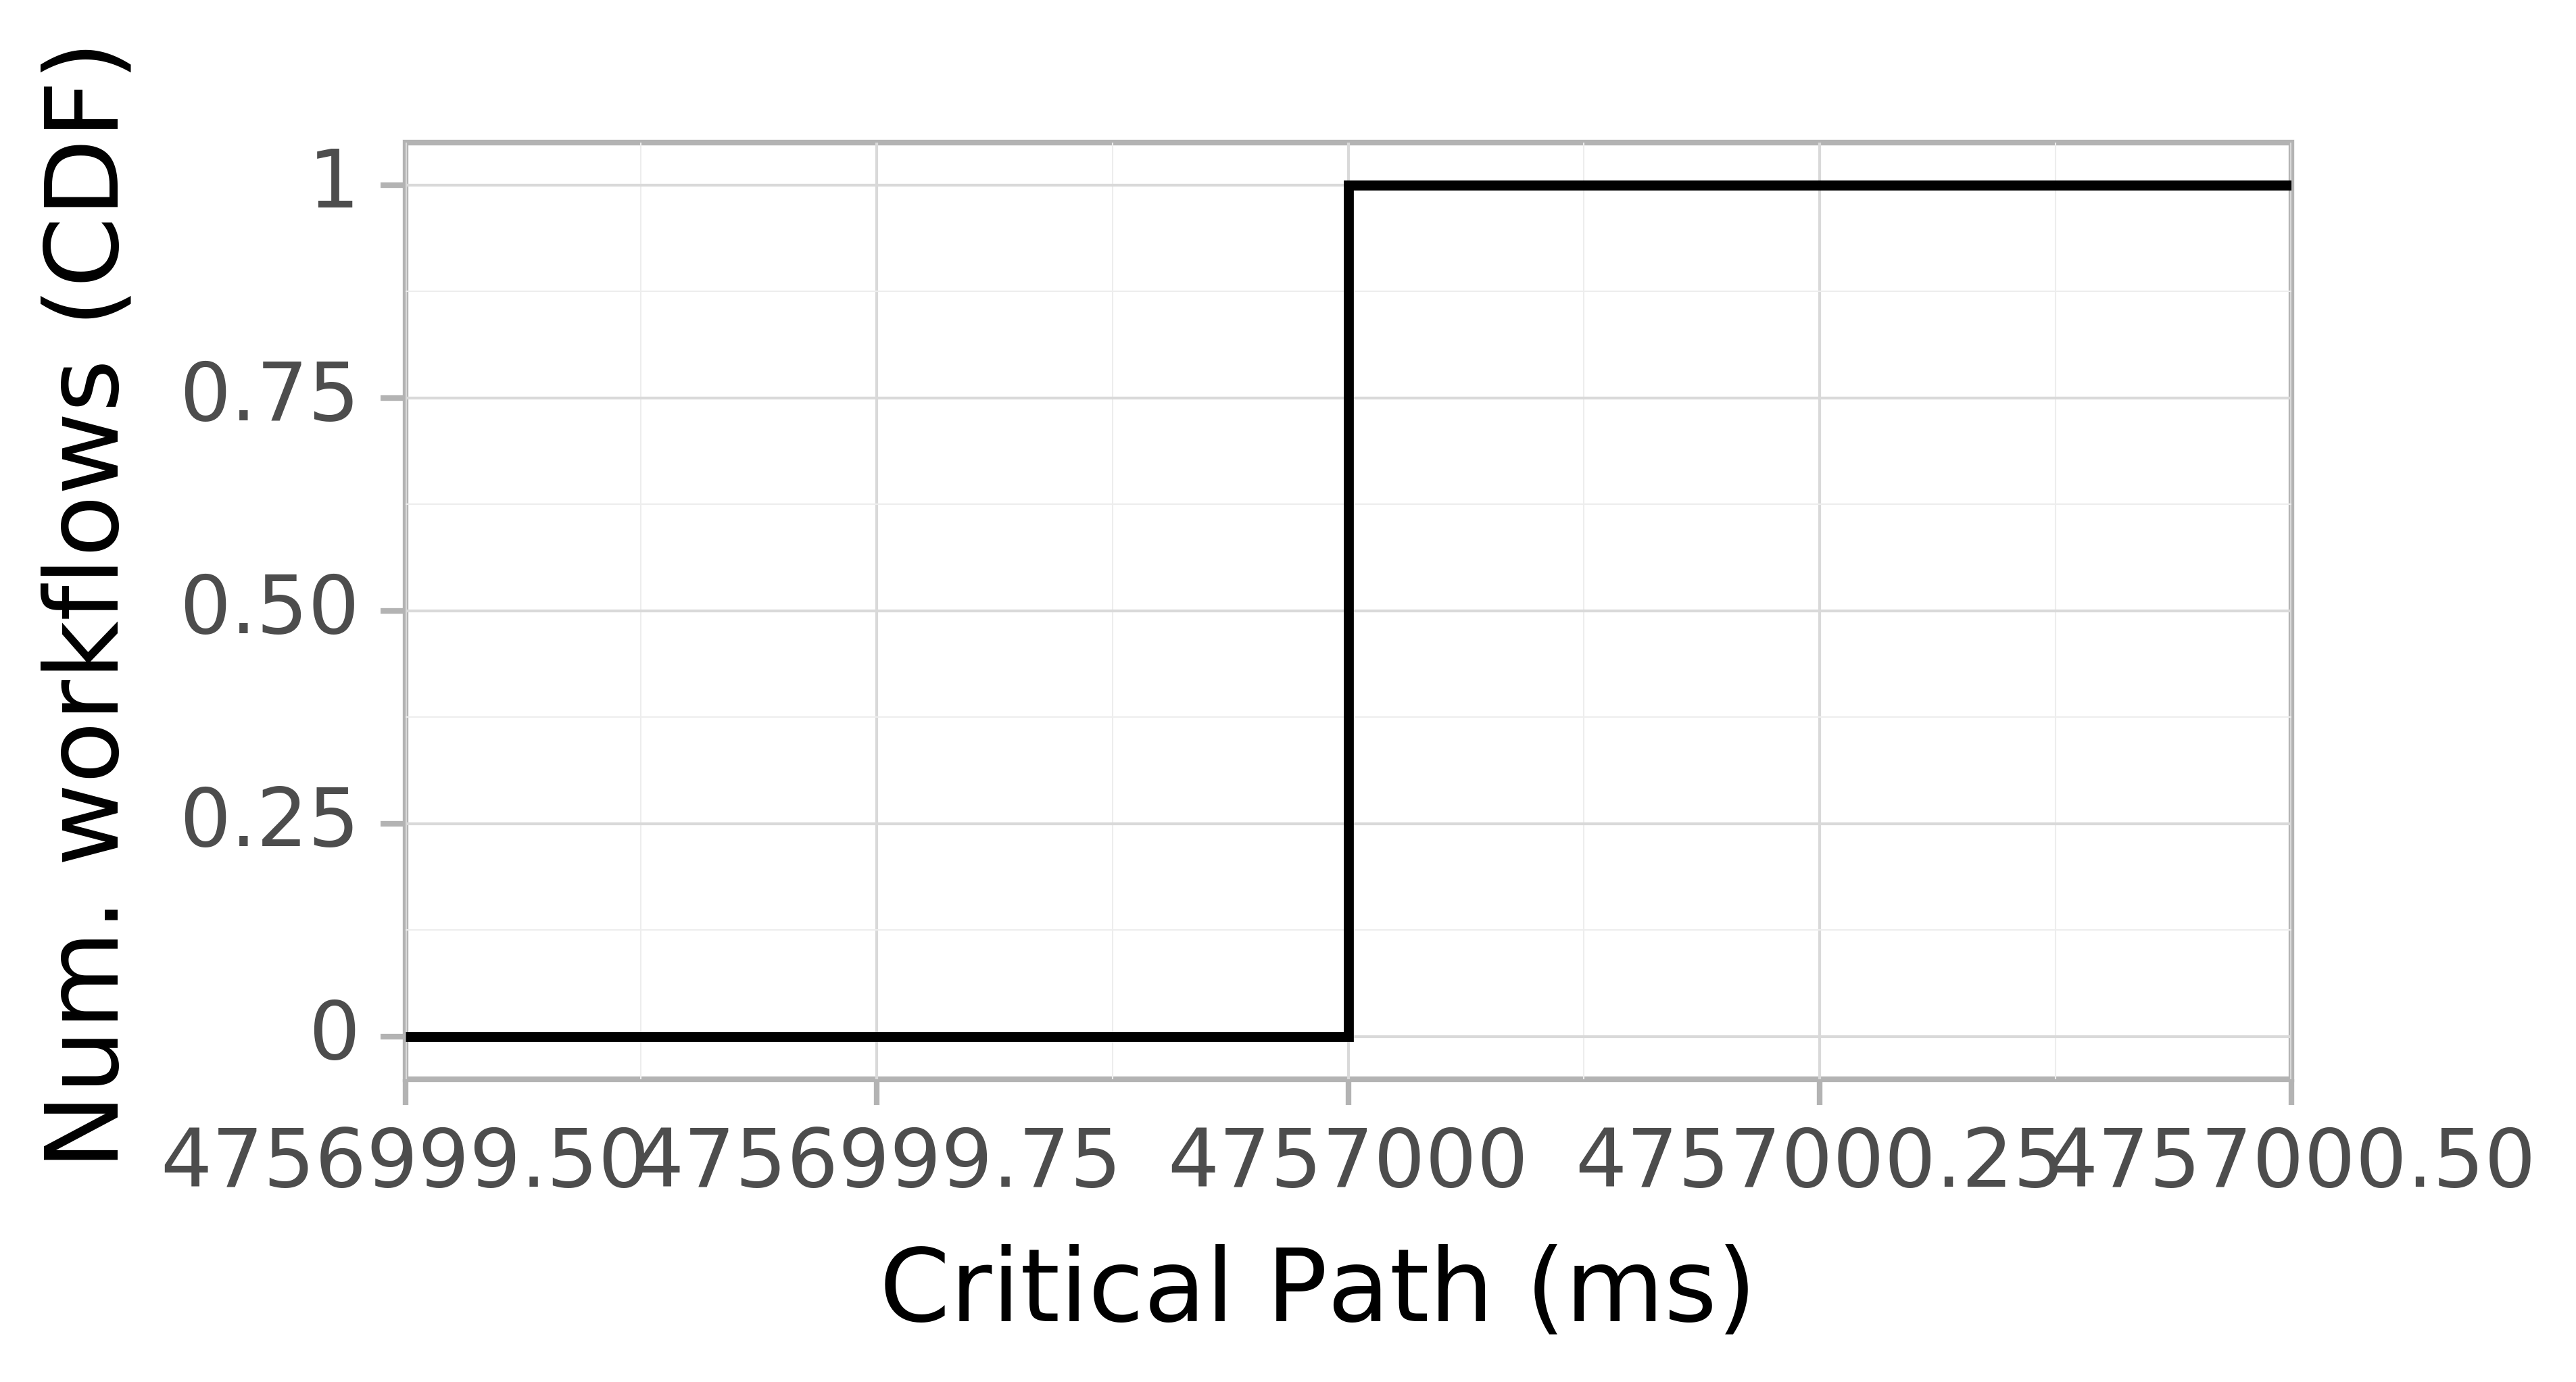 Job runtime CDF graph for the Pegasus_P5 trace.